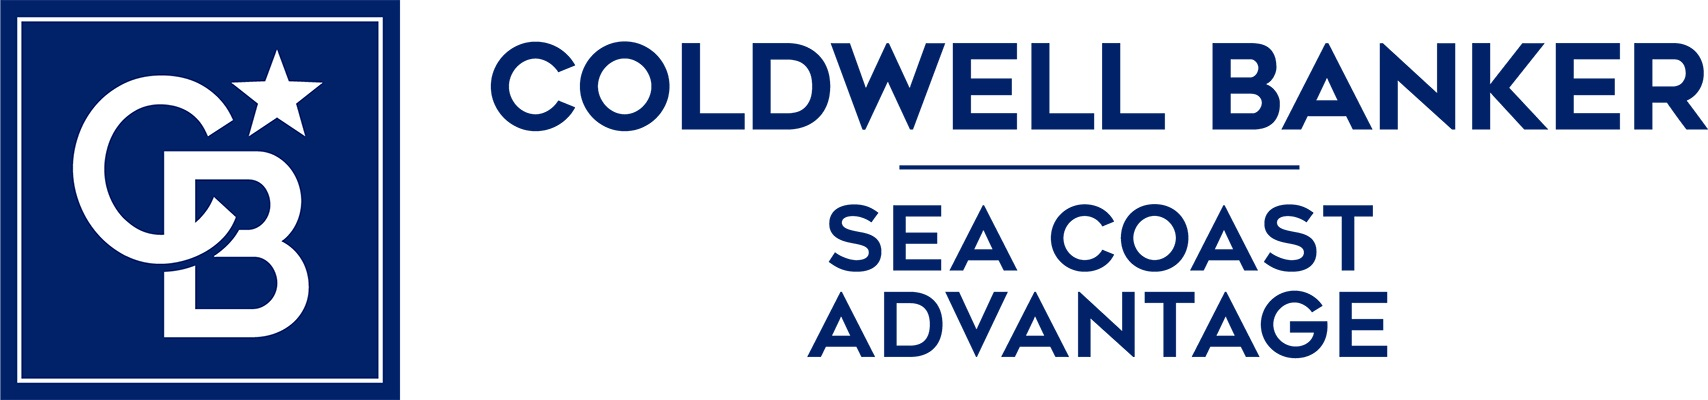 Vondicia Davis - Coldwell Banker Sea Coast Advantage Realty Logo